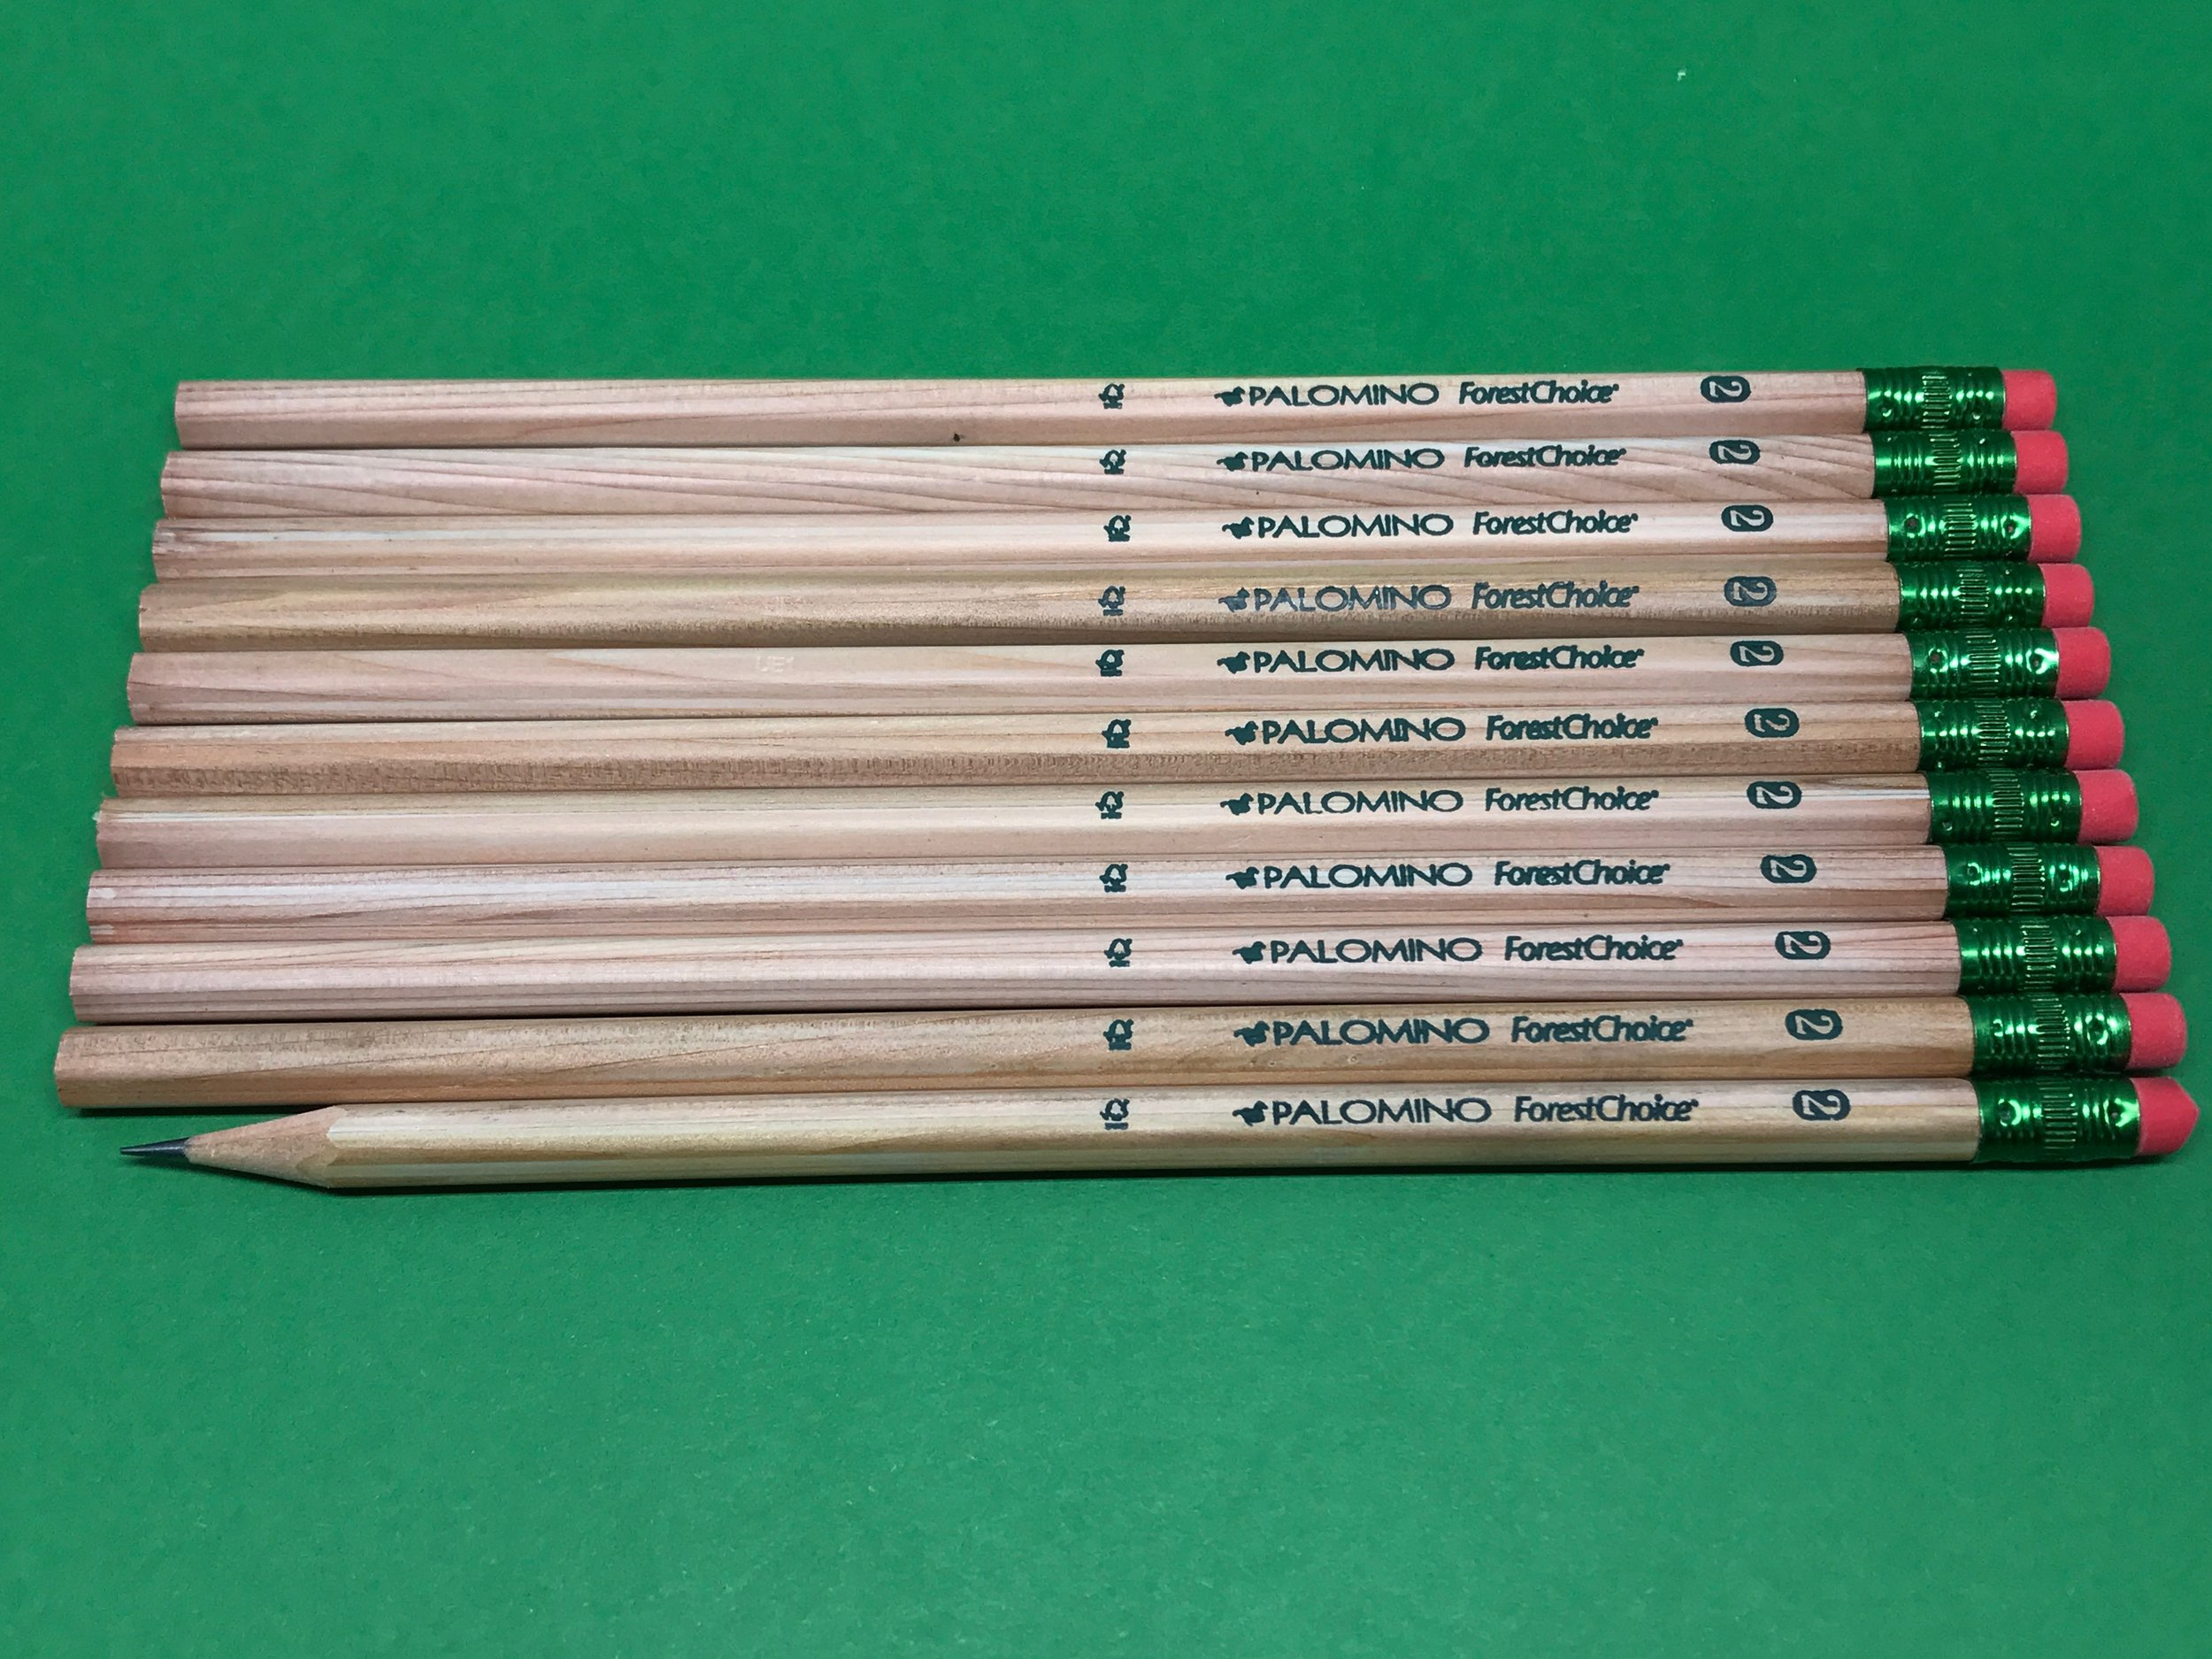 Palomino Forest Choice #2 Pencil